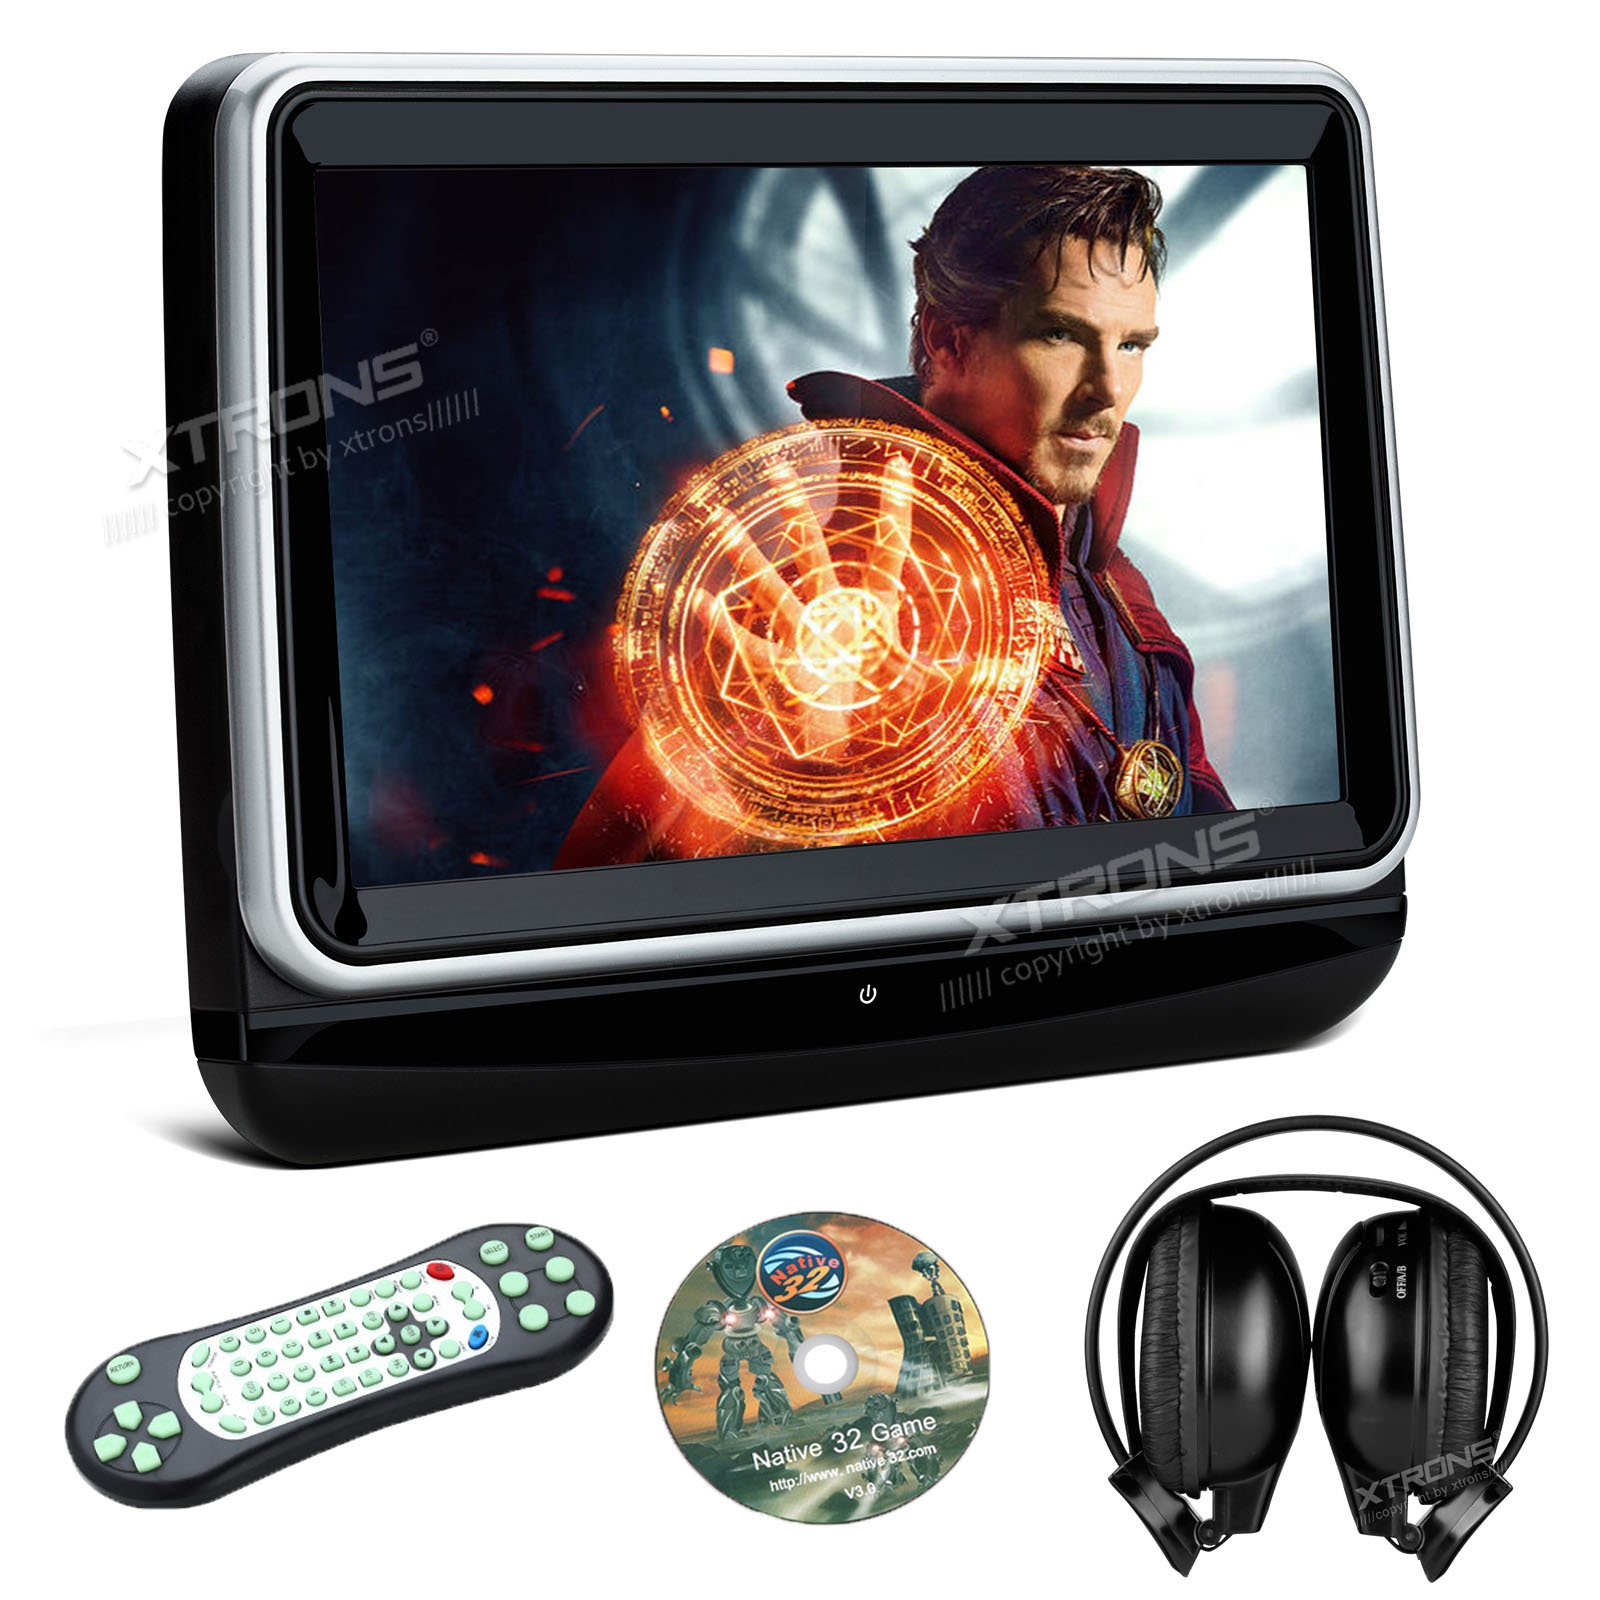 XTRONS Single 10.1 Inch HD TFT Digital Touch Screen Car Auto Headrest DVD Player 1080P Video HDMI Port 1PC Headphone Included